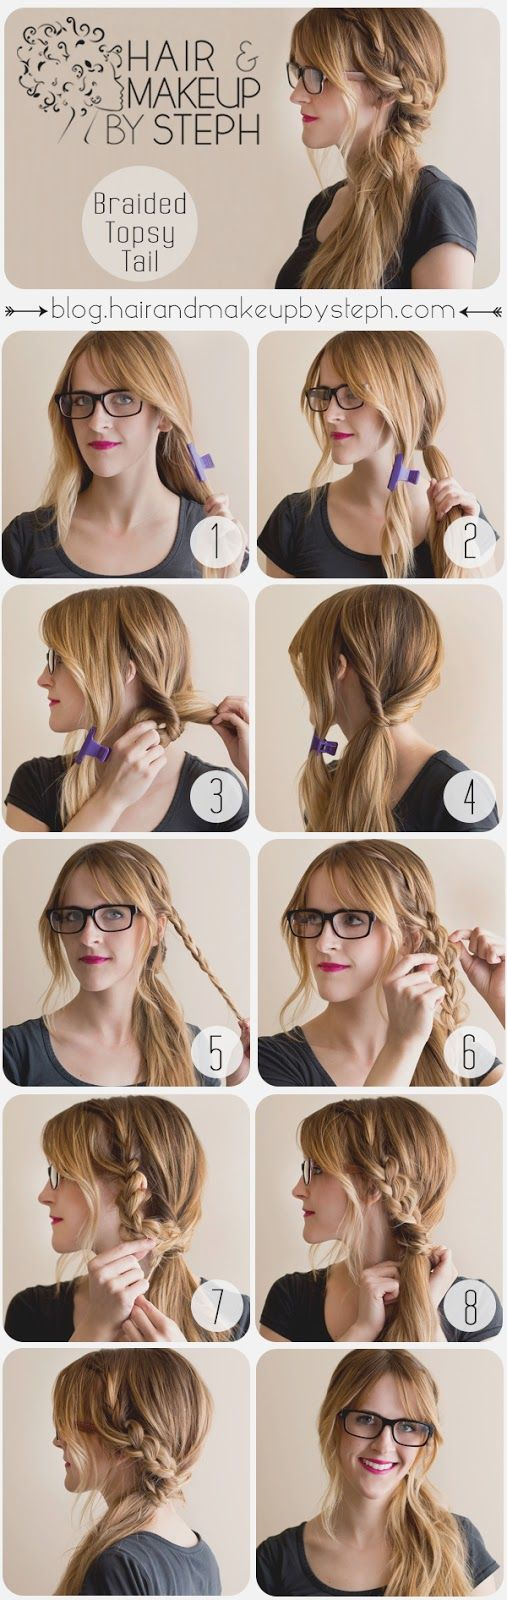 Enjoyable 1000 Images About Hair On Pinterest Twists Fishtail Braids And Short Hairstyles For Black Women Fulllsitofus